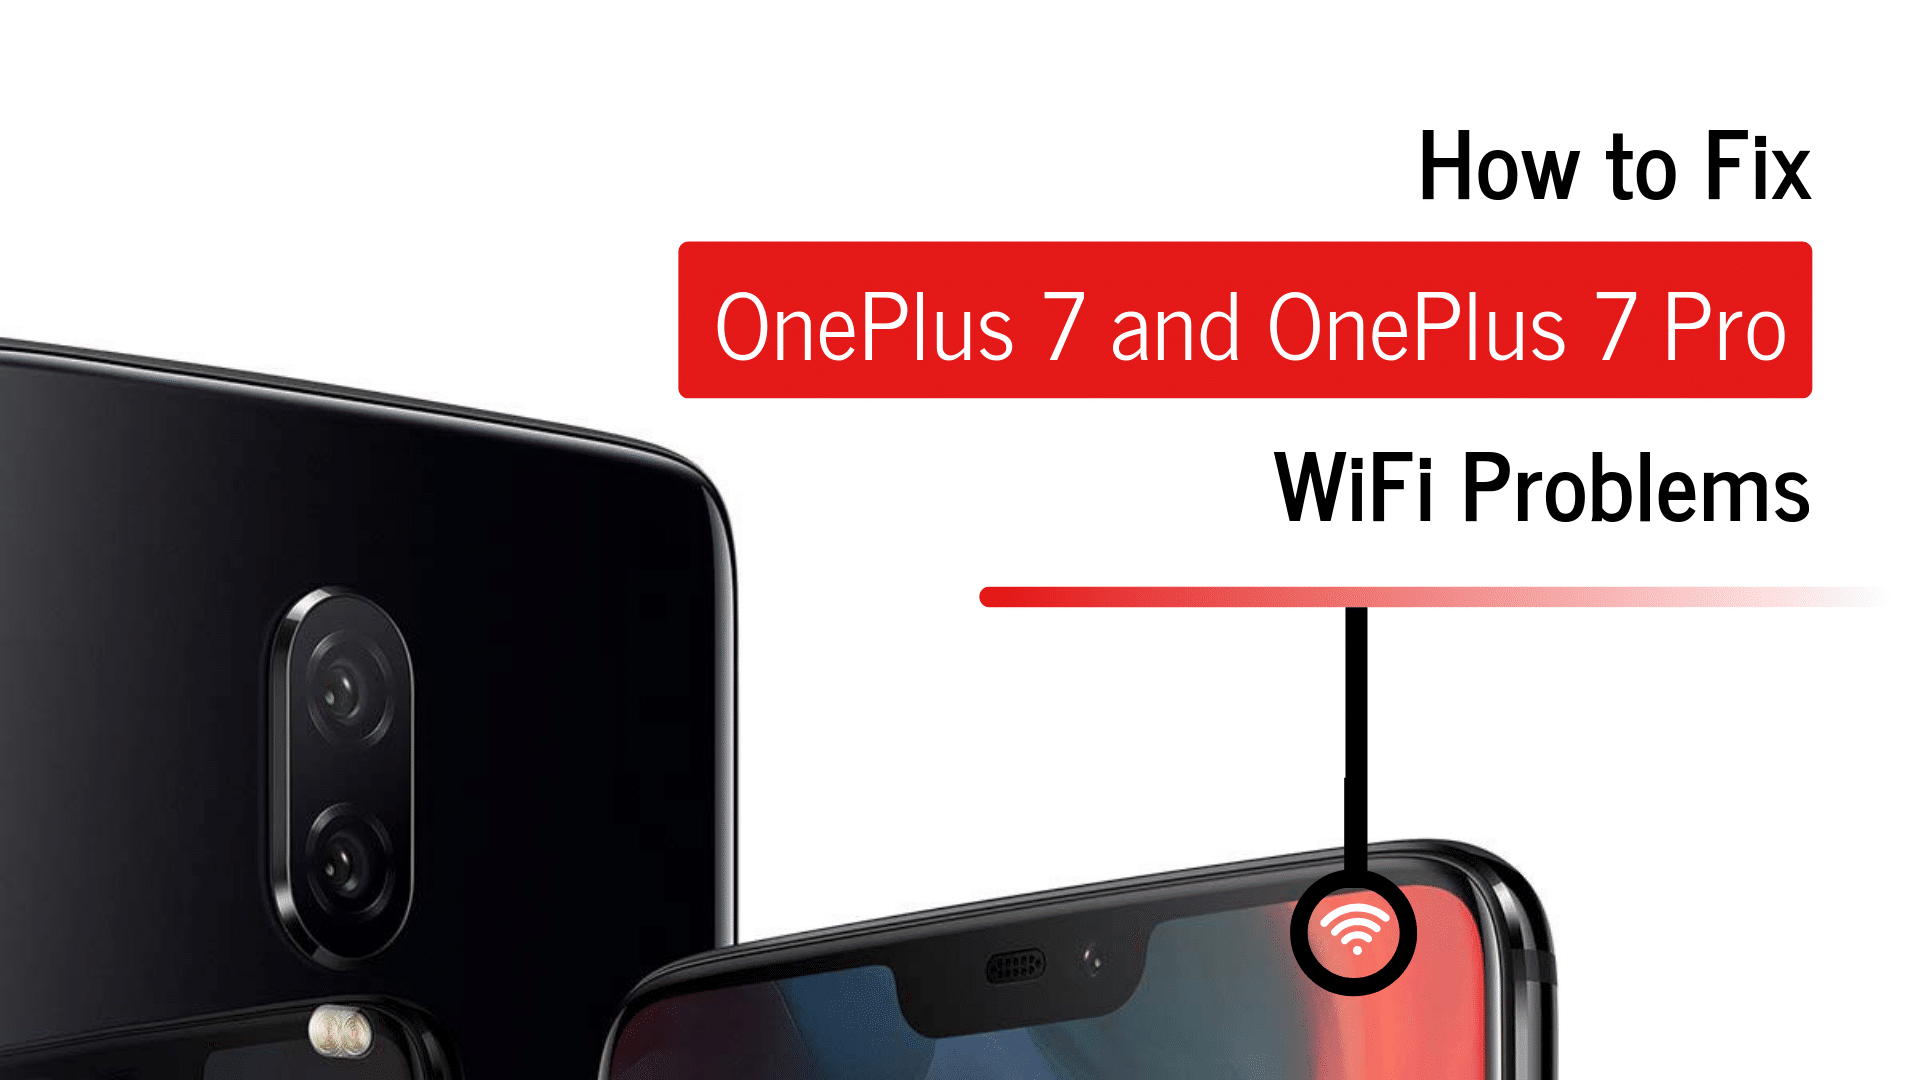 Fix OnePlus 7 and OnePlus 7 Pro WiFi Problems